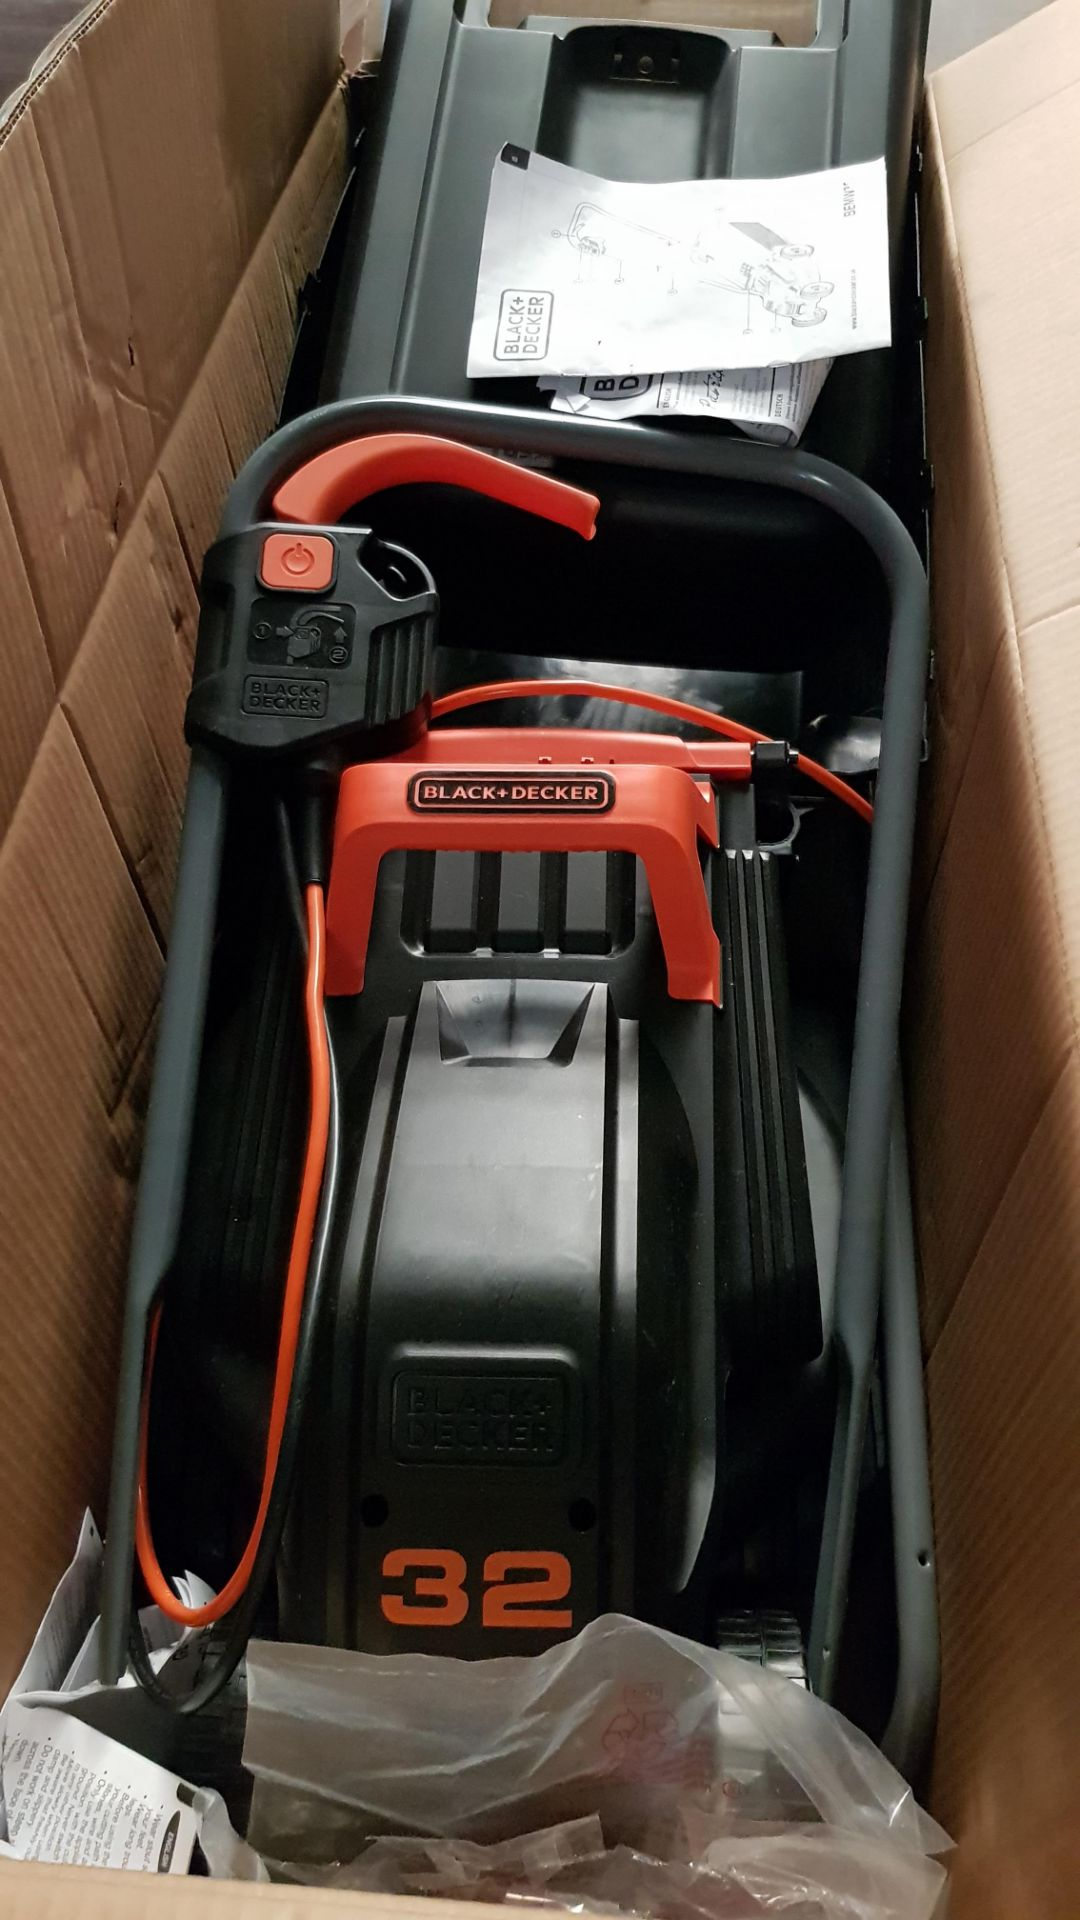 (P5) 1x Black & Decker 32cm 1000W Corded Lawn Mower. Contents Appear Clean, Unused. (Please Note – - Image 5 of 5